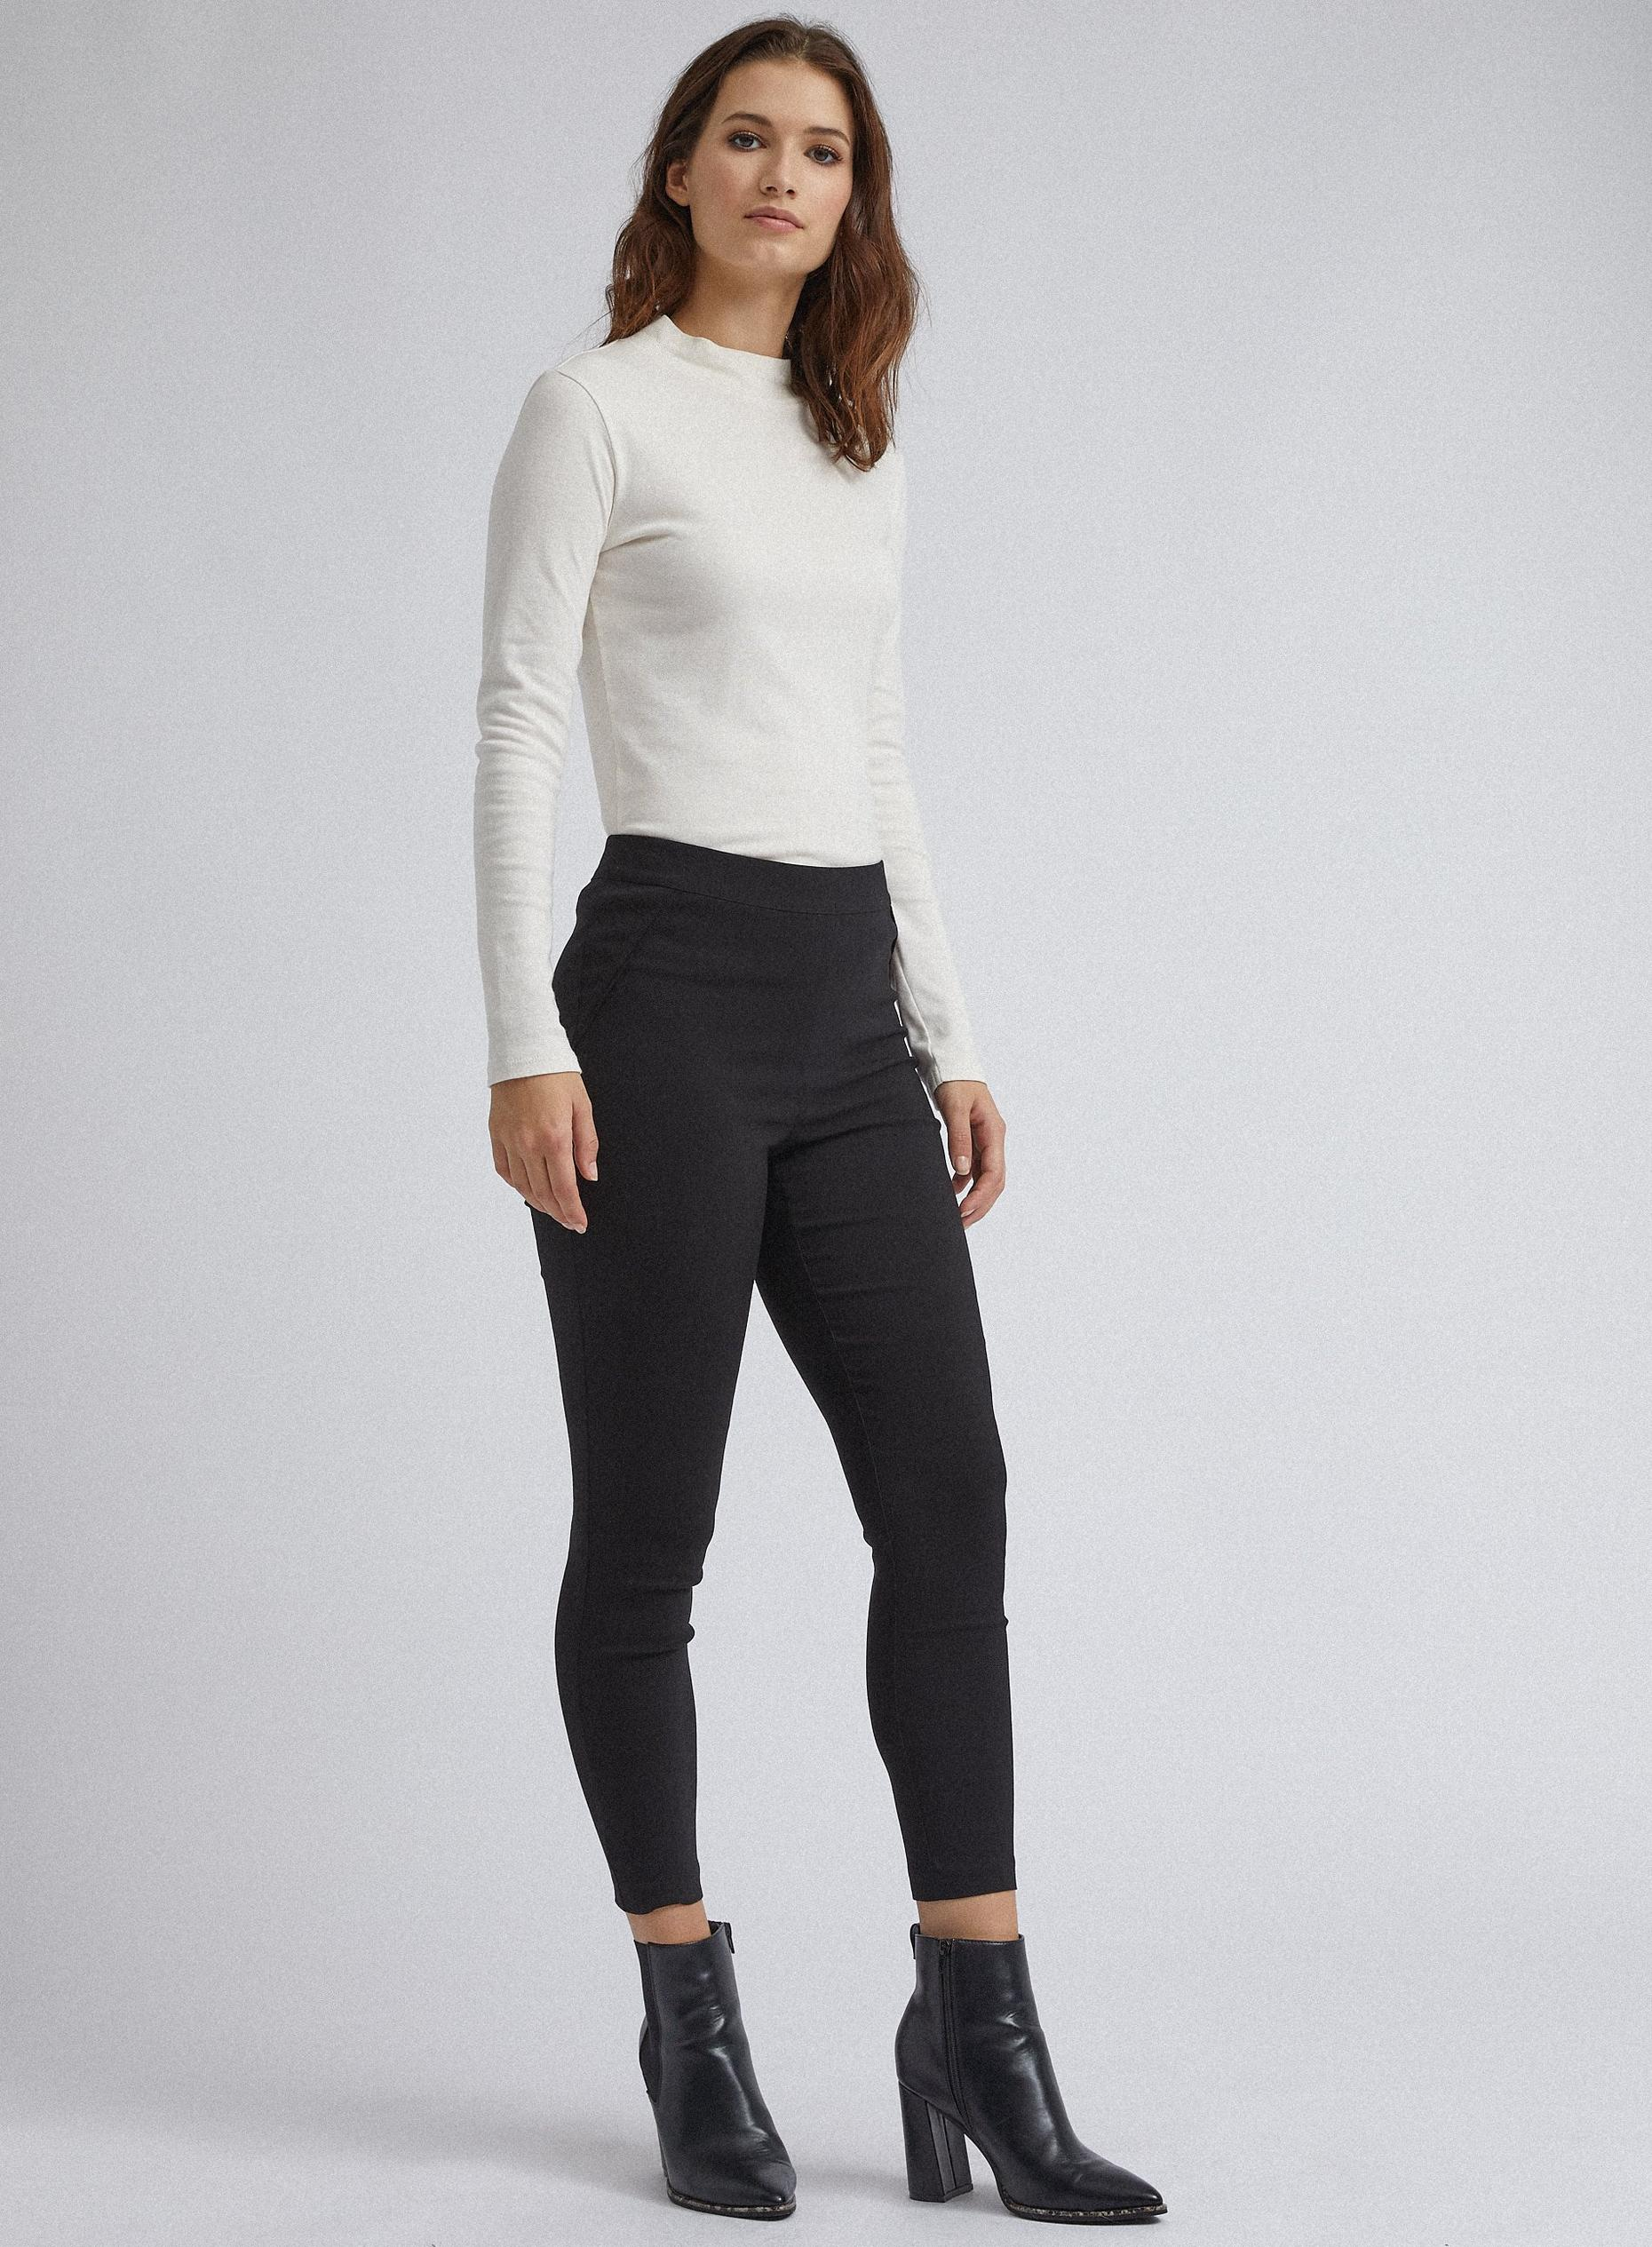 Short Black Skinny Trouser